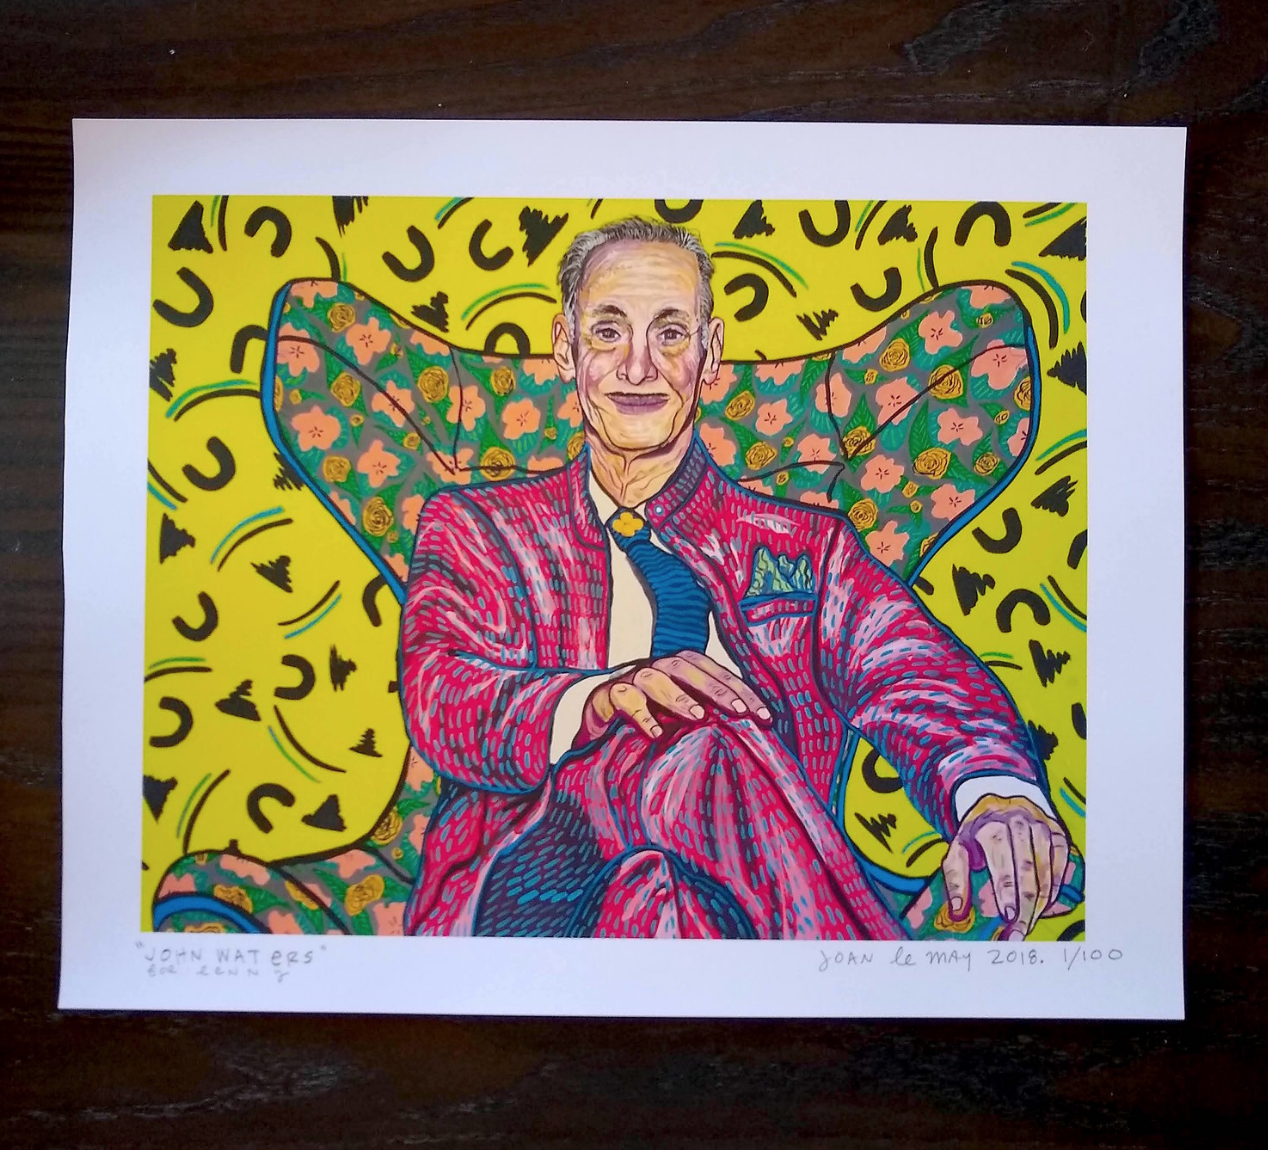 Image of John Waters Signed and Numbered Giclée Print